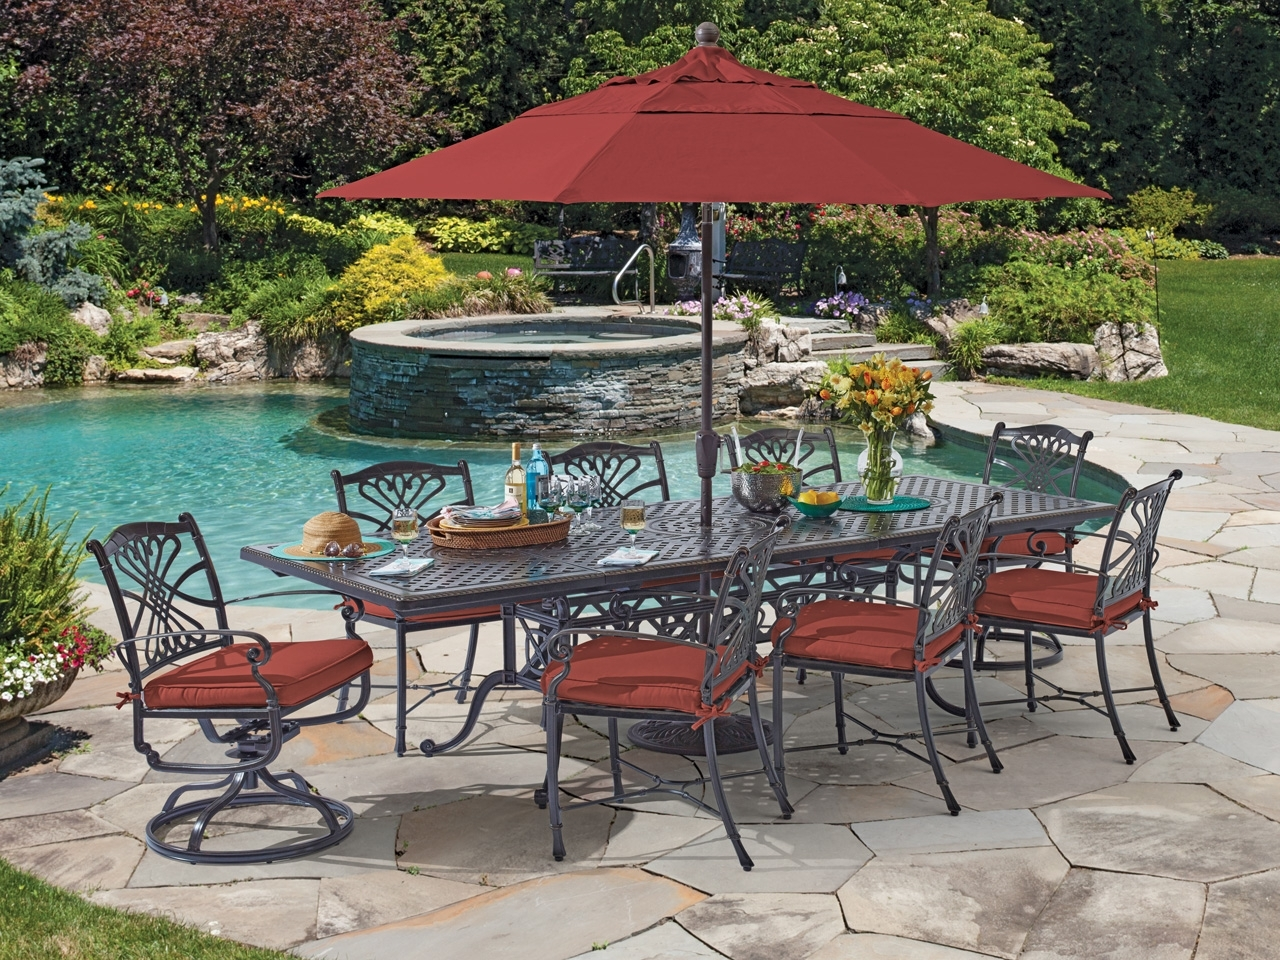 Round Patio Dining Sets With Umbrella Home Depot Sams Club Furniture Within Most Popular Sams Club Patio Umbrellas (Gallery 16 of 20)